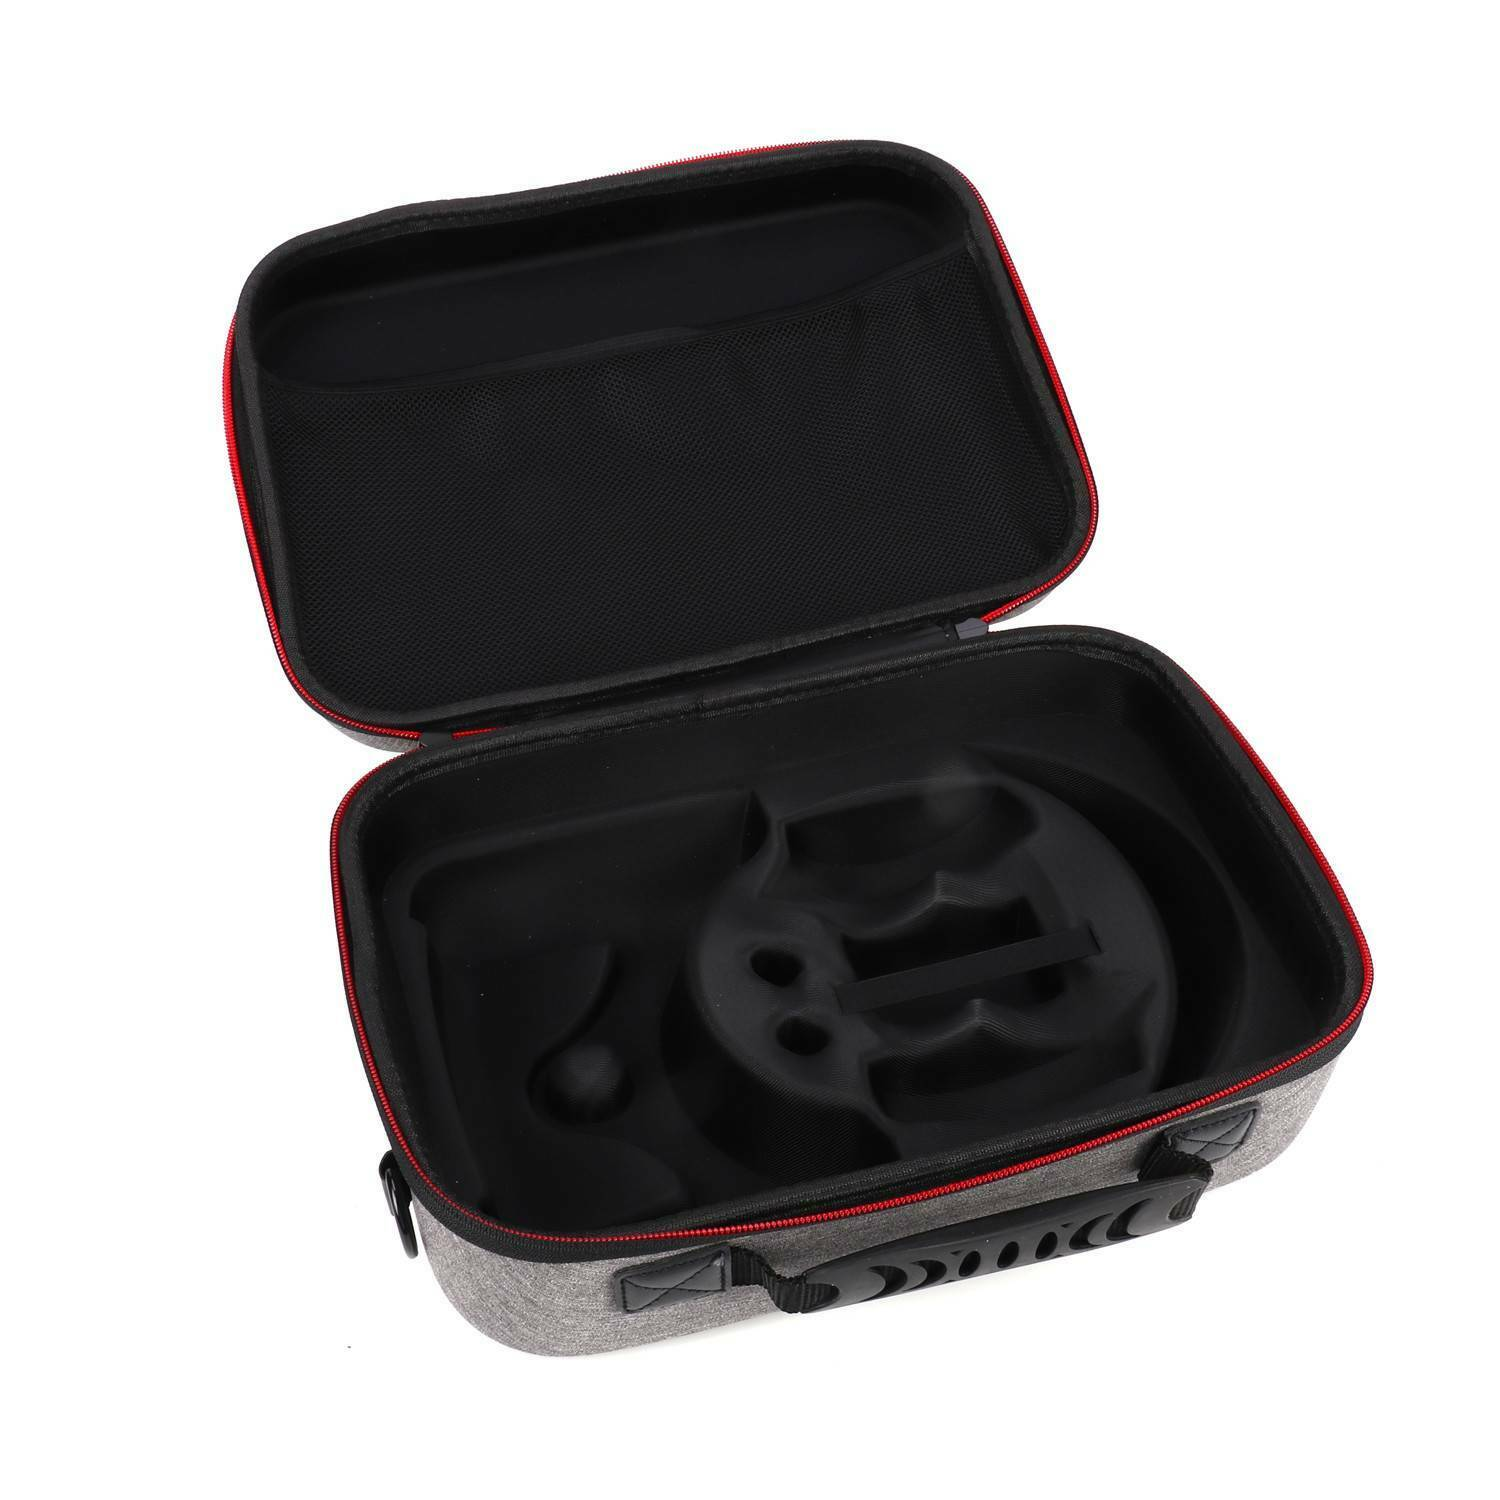 Intense Travel Case for Oculus Quest VR Gaming Headset and Controllers Ac... - s l1600